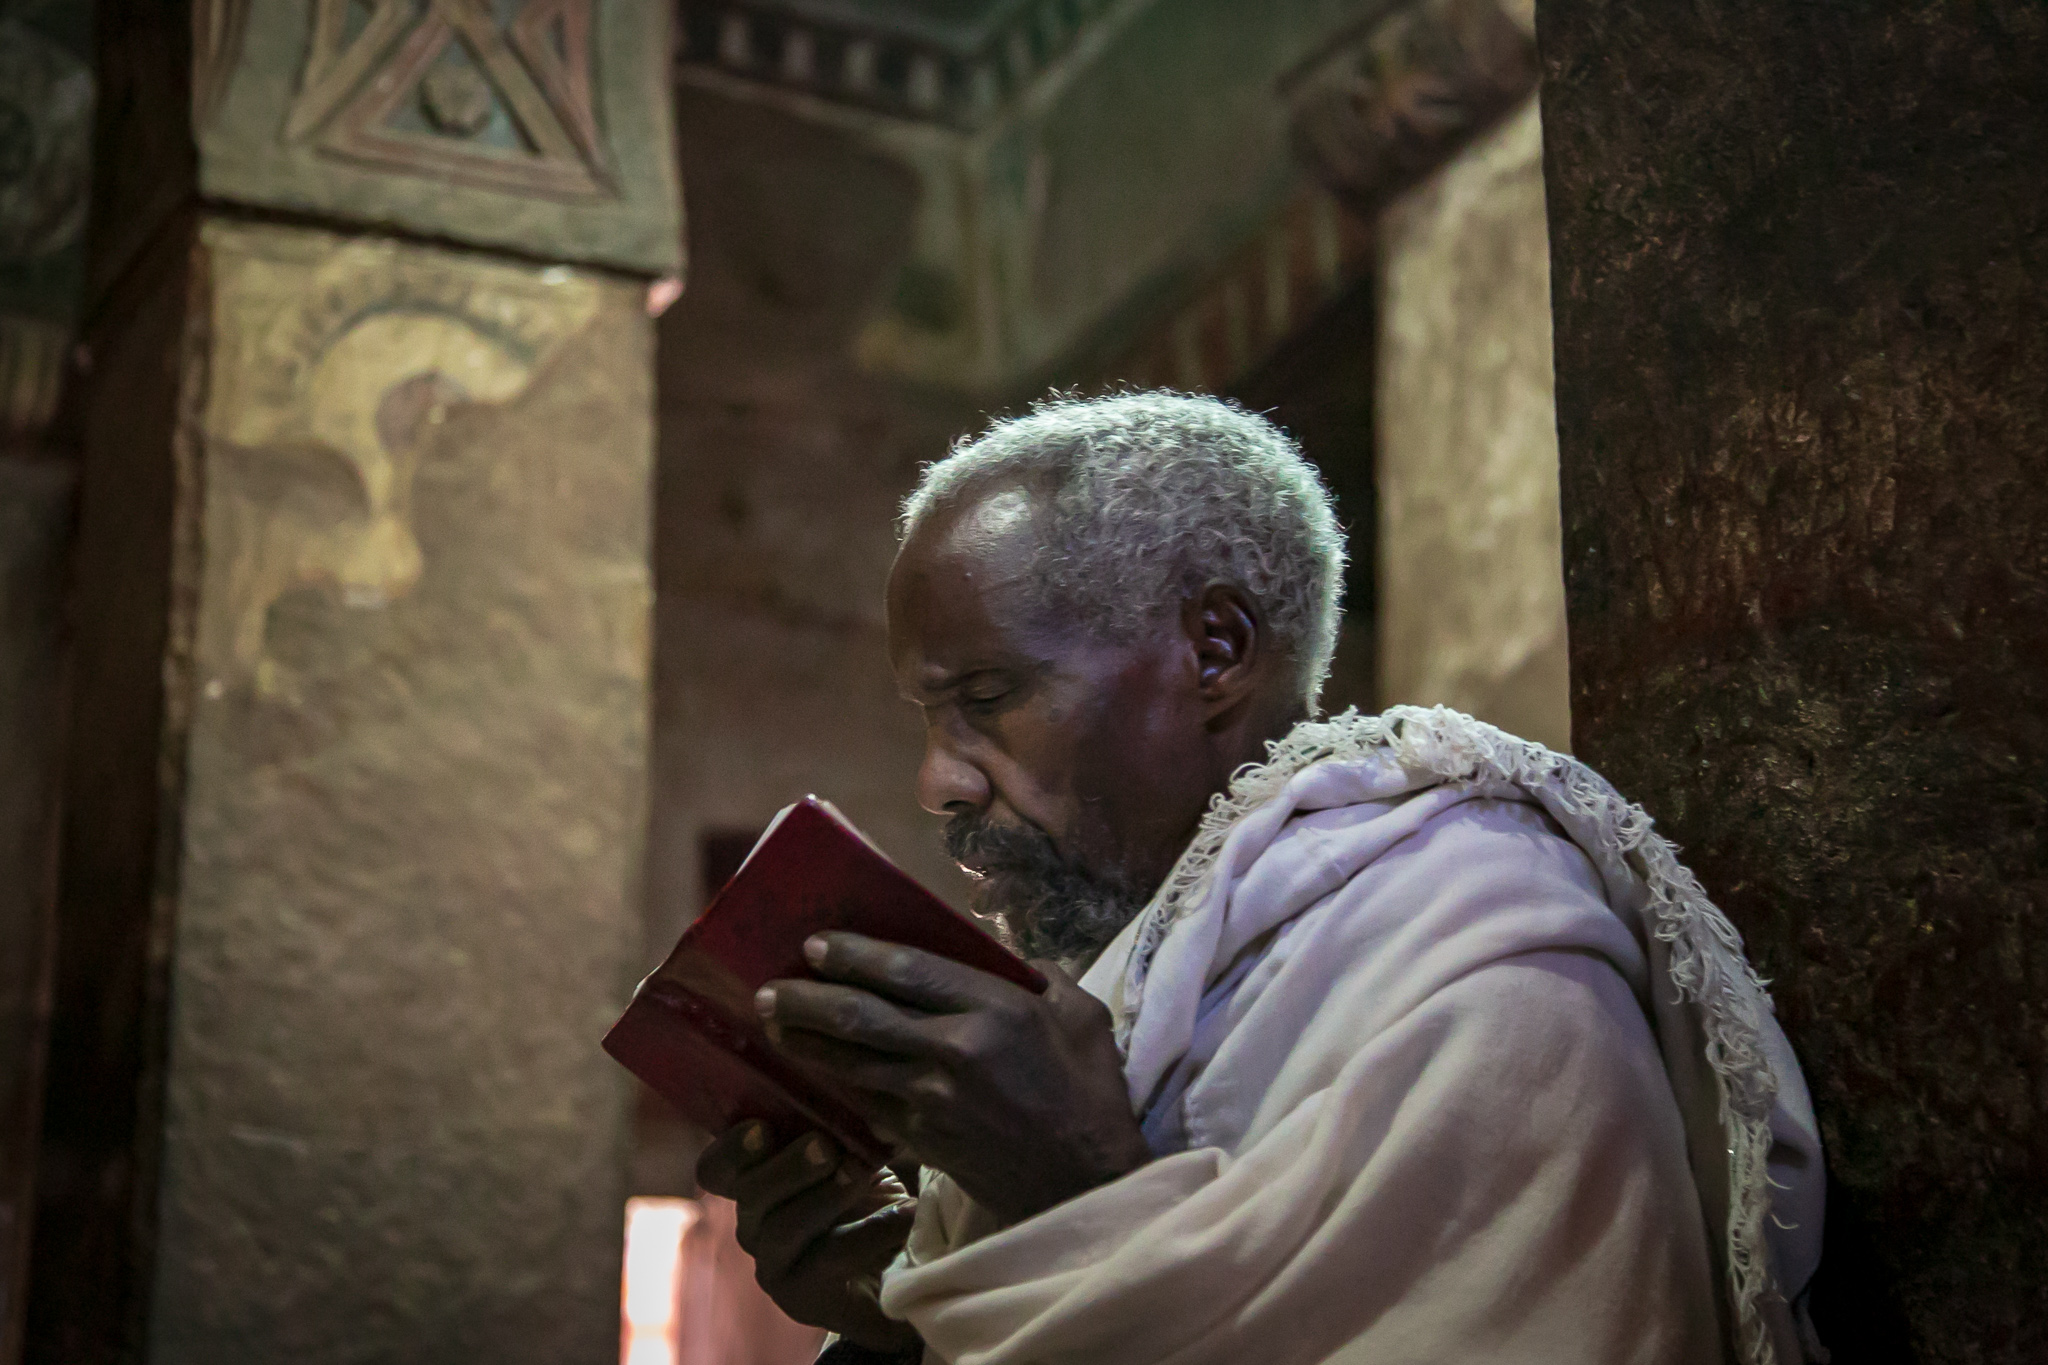 A priest reads his handheld prayer book inside a church filled with quiet monks in meditative readings. // photo © Kim I. Mott